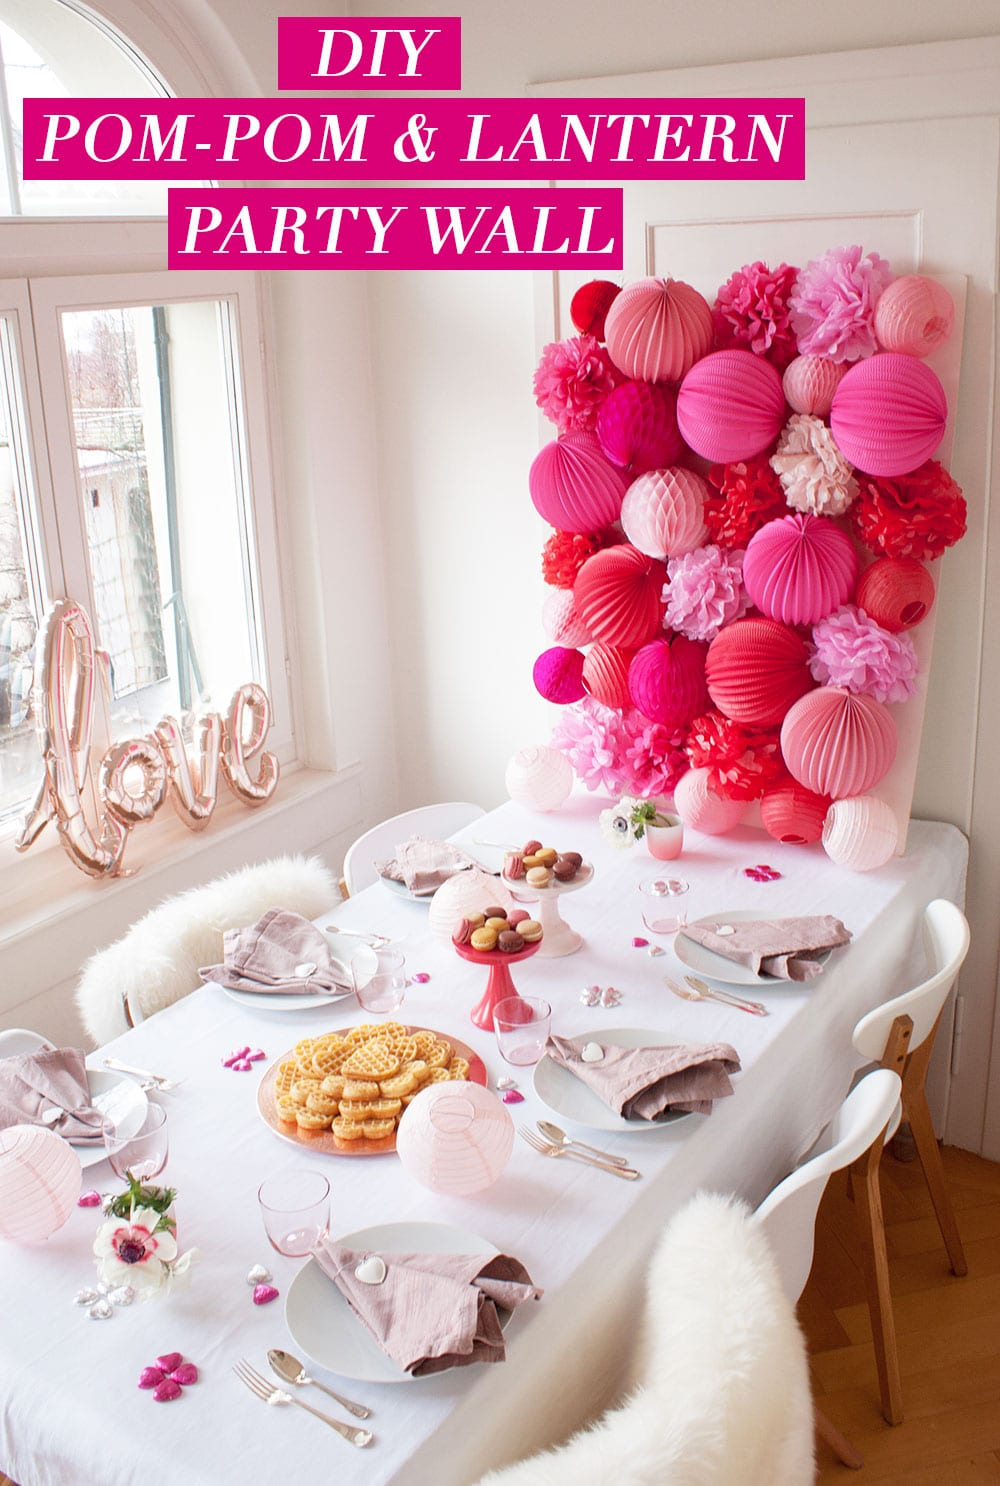 DIY Party Wall | Pom-Poms and Paper Lanterns make quite the statement wall!